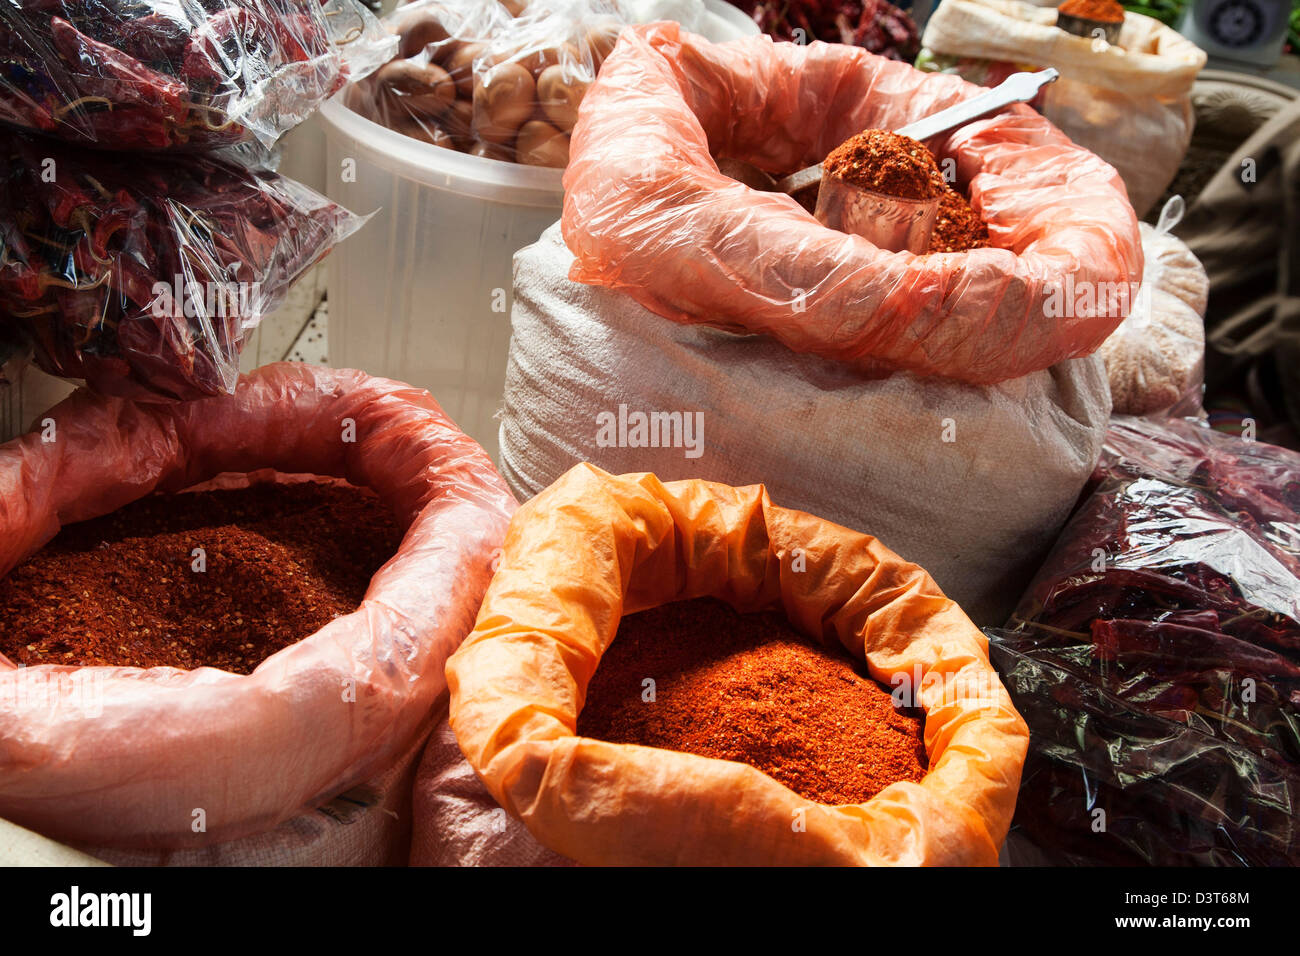 Spices at the open market in Thimphu, Bhutan. - Stock Image